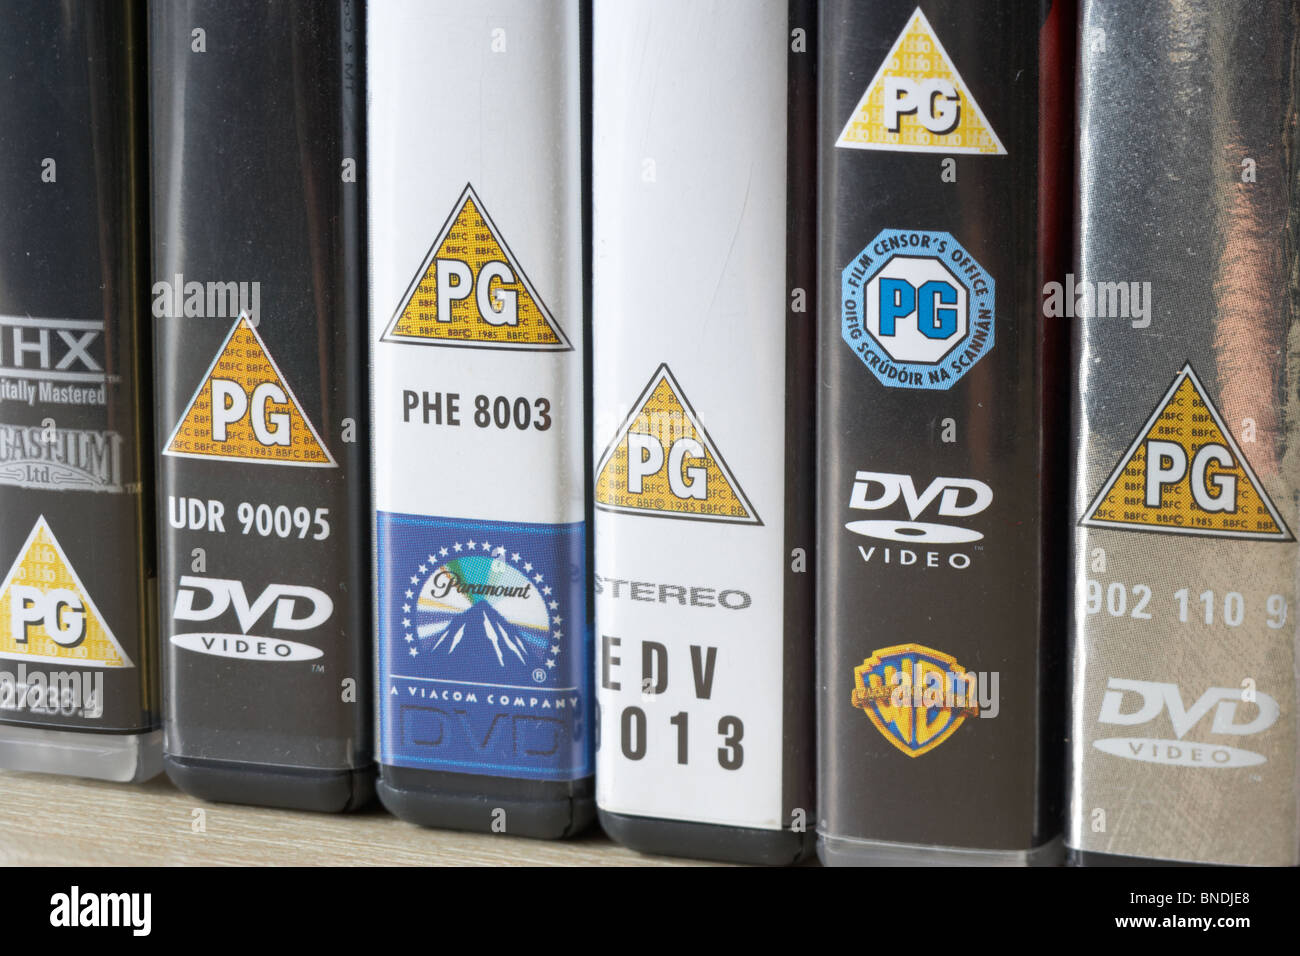 row of dvd video cases showing BBFC and irish film censors office PG classification notice from the uk Stock Photo